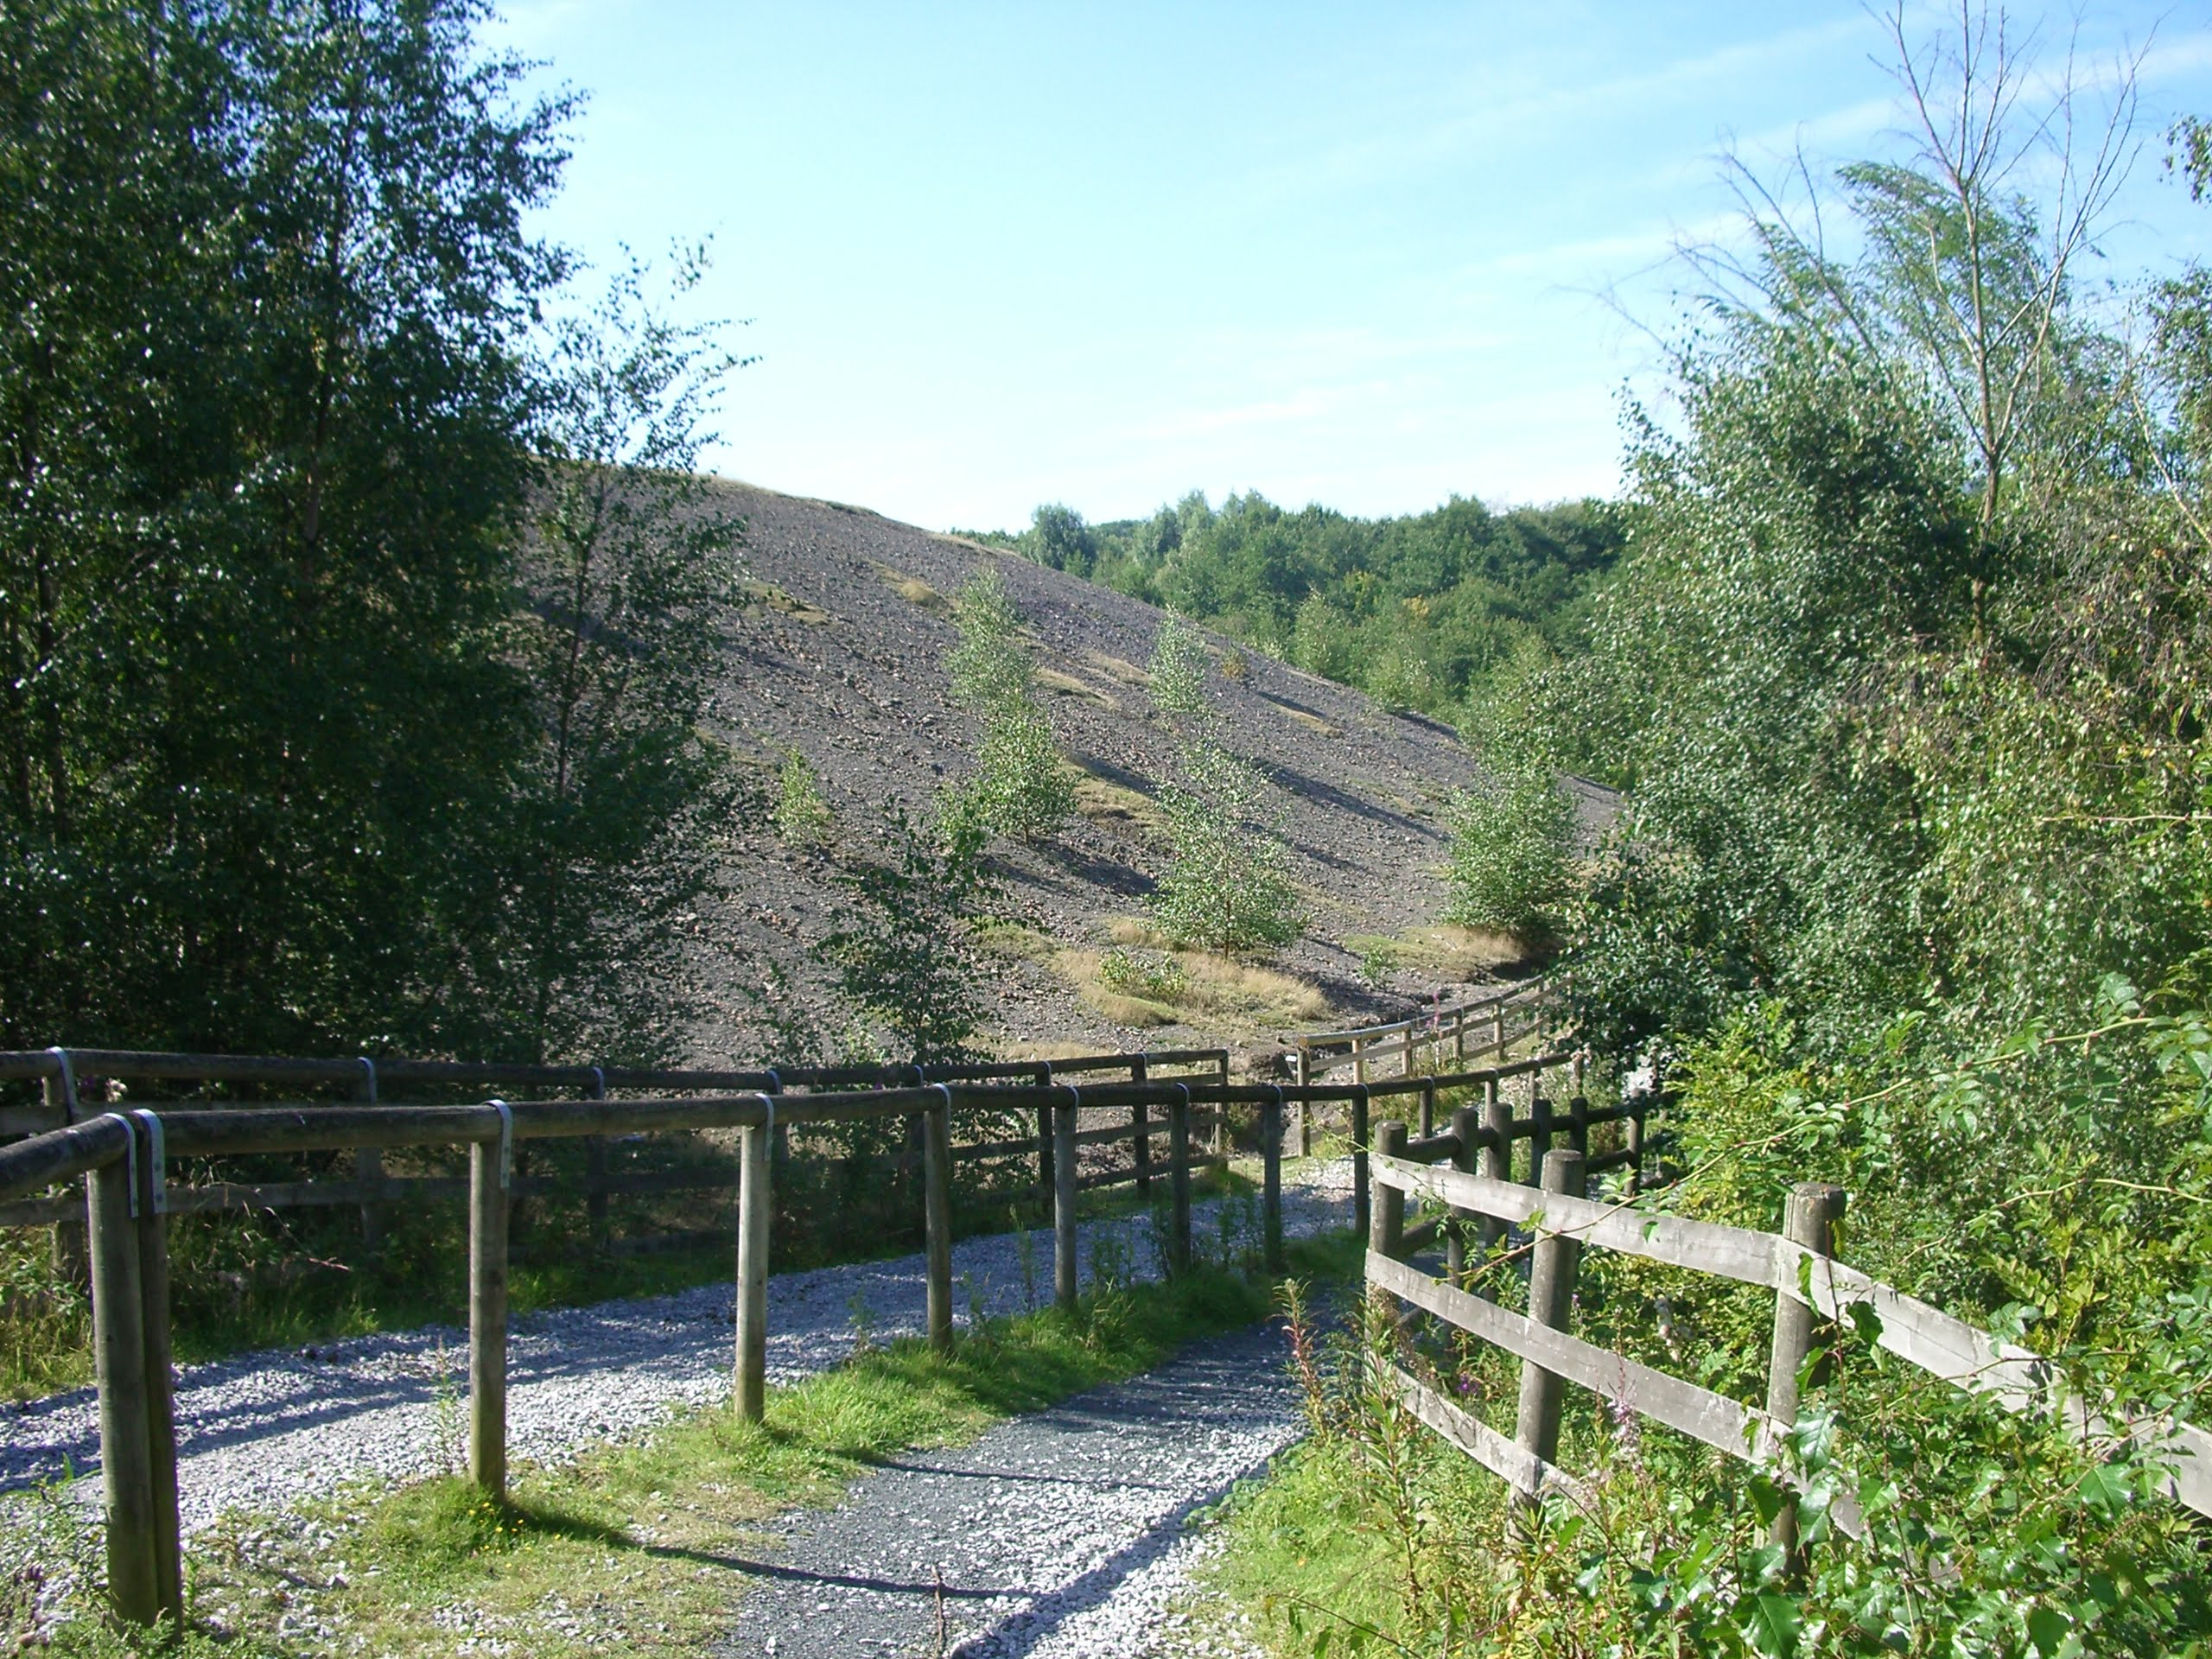 scrub-is-gradually #-colonising-the-spoil heaps-of-the-former-granville-colliery